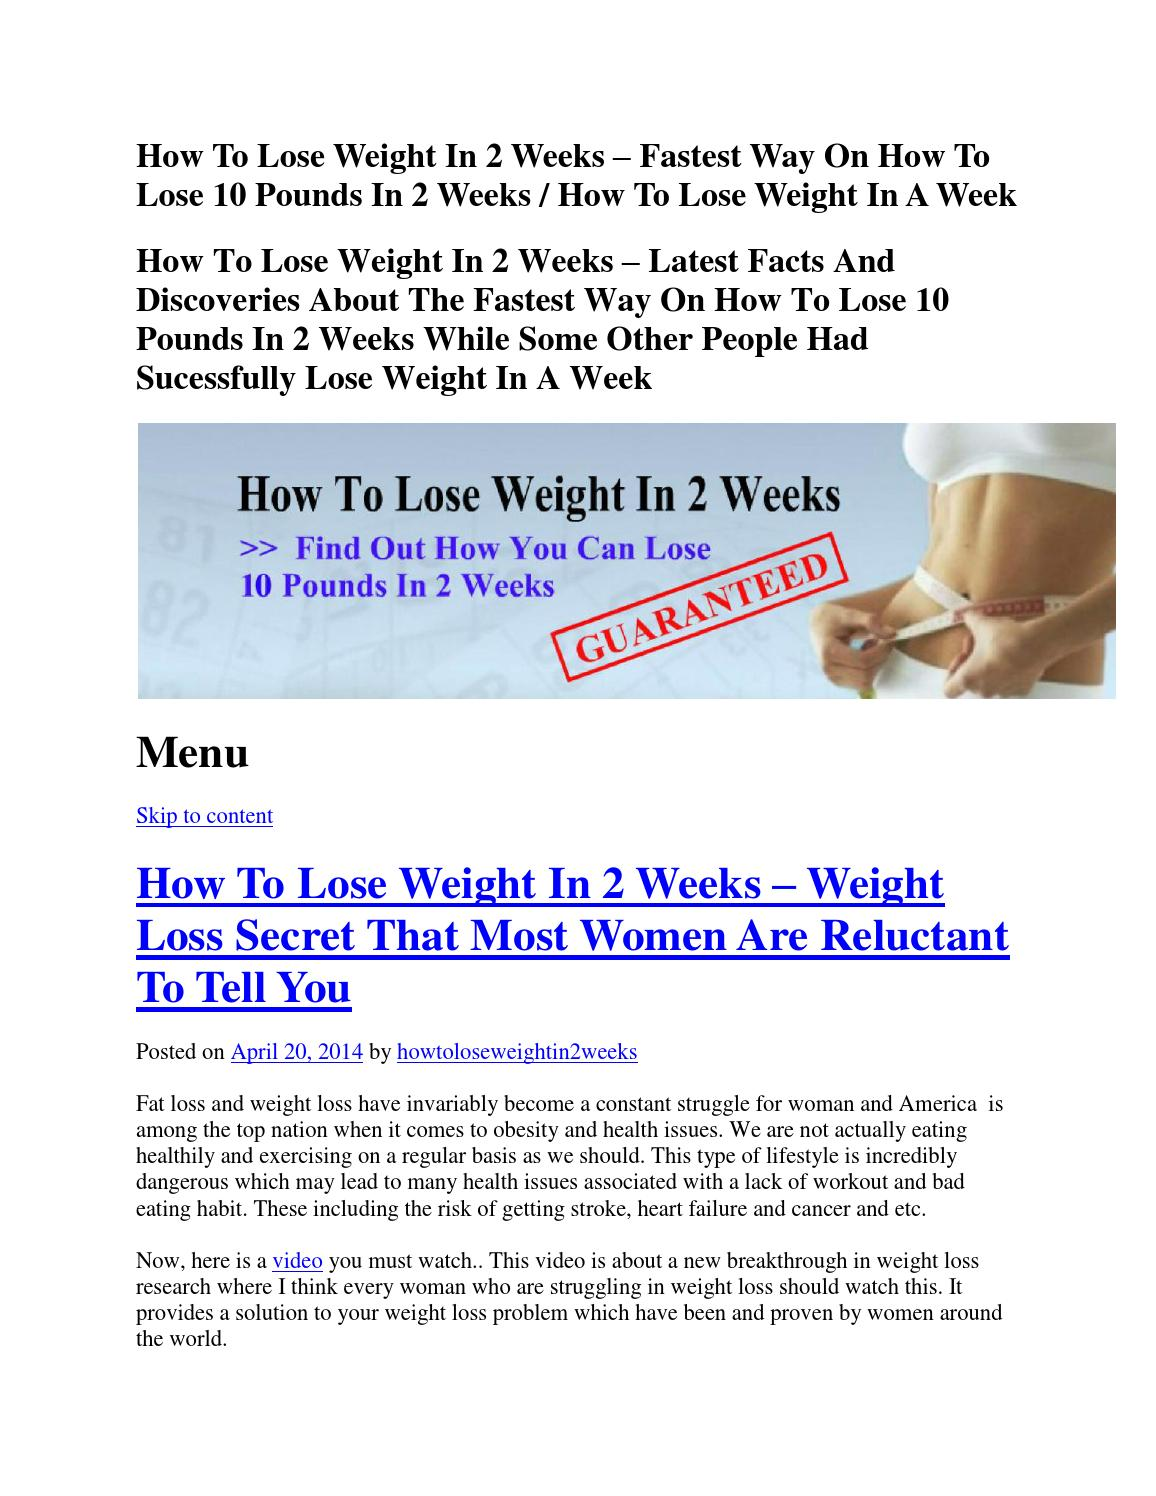 How To Lose Weight In 2 Weeks By Musviglose Issuu